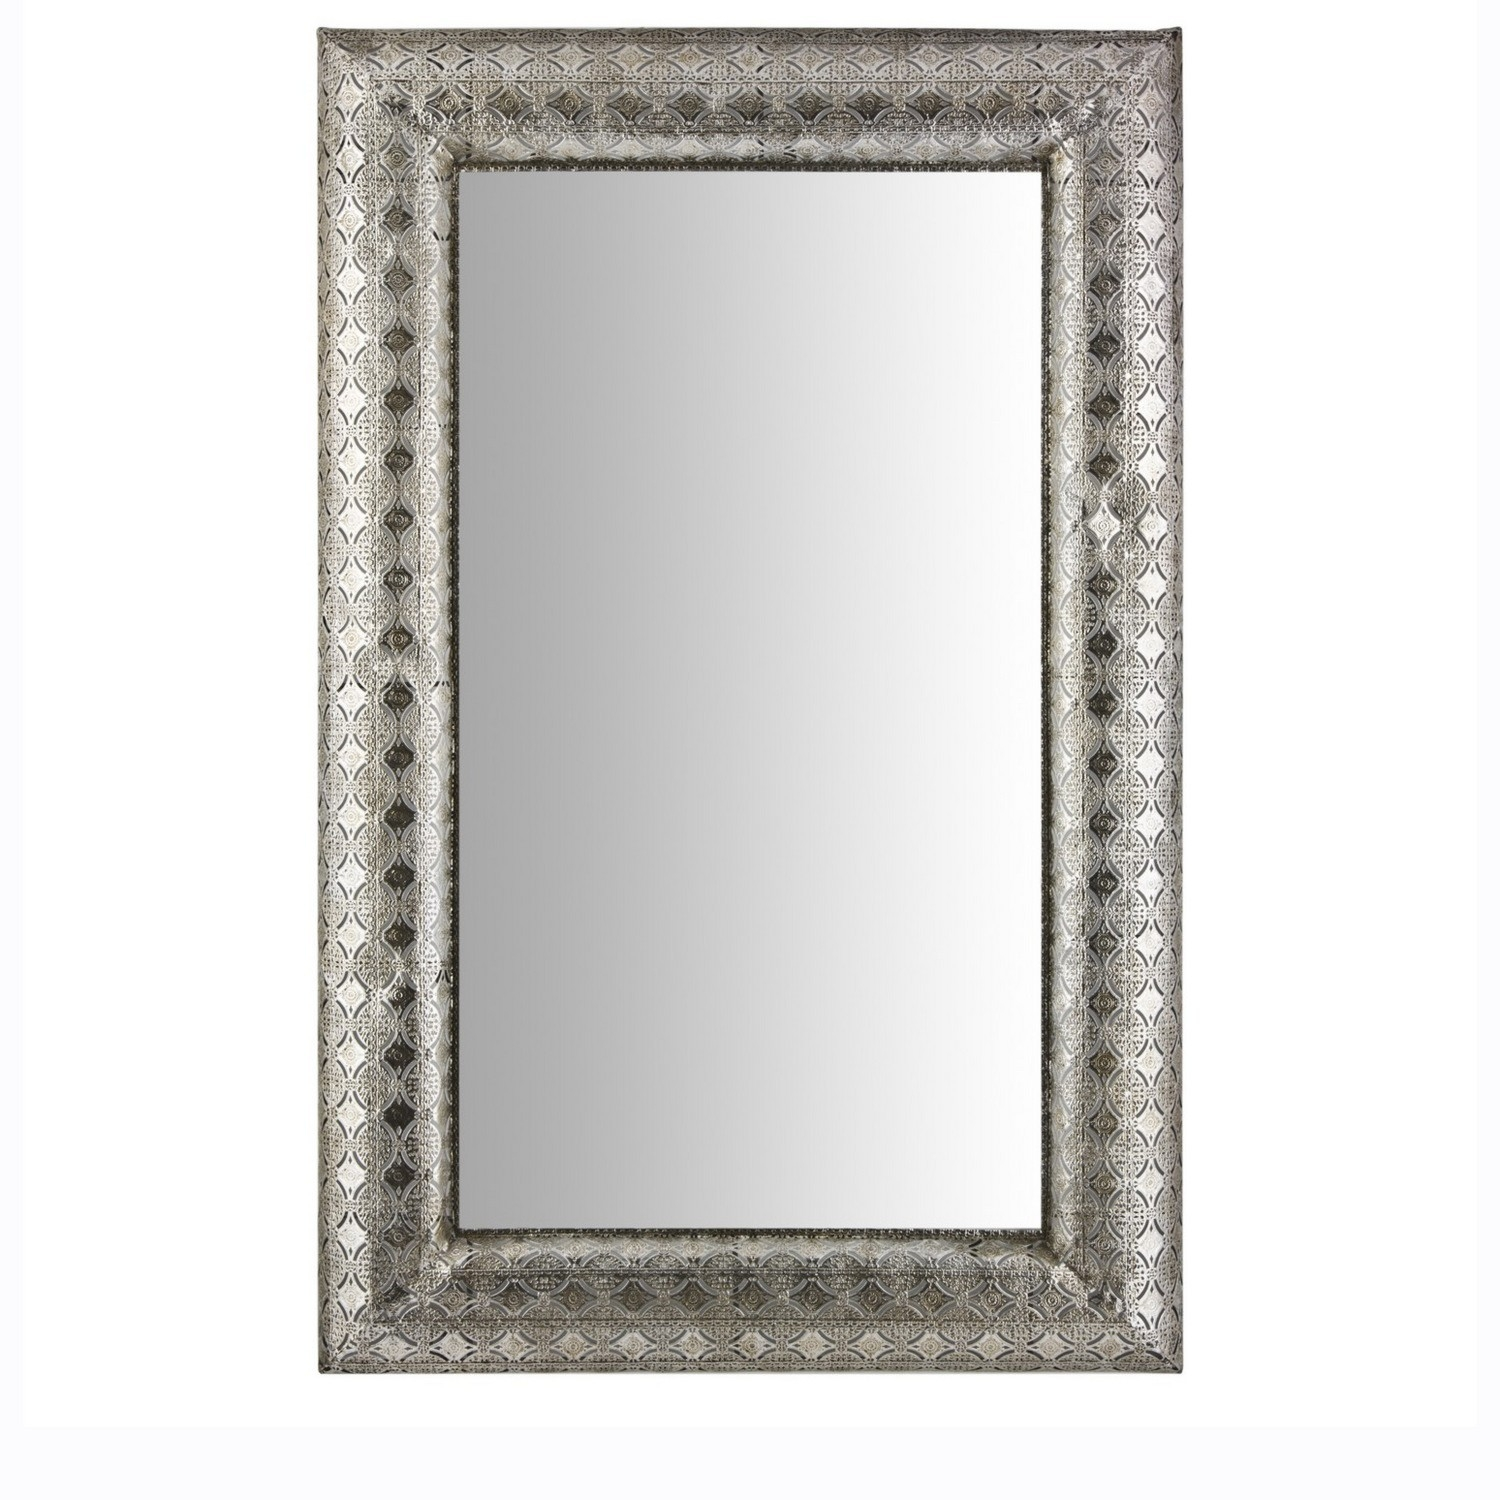 Mirrors The Range Pertaining To Champagne Silver Mirror (View 12 of 15)